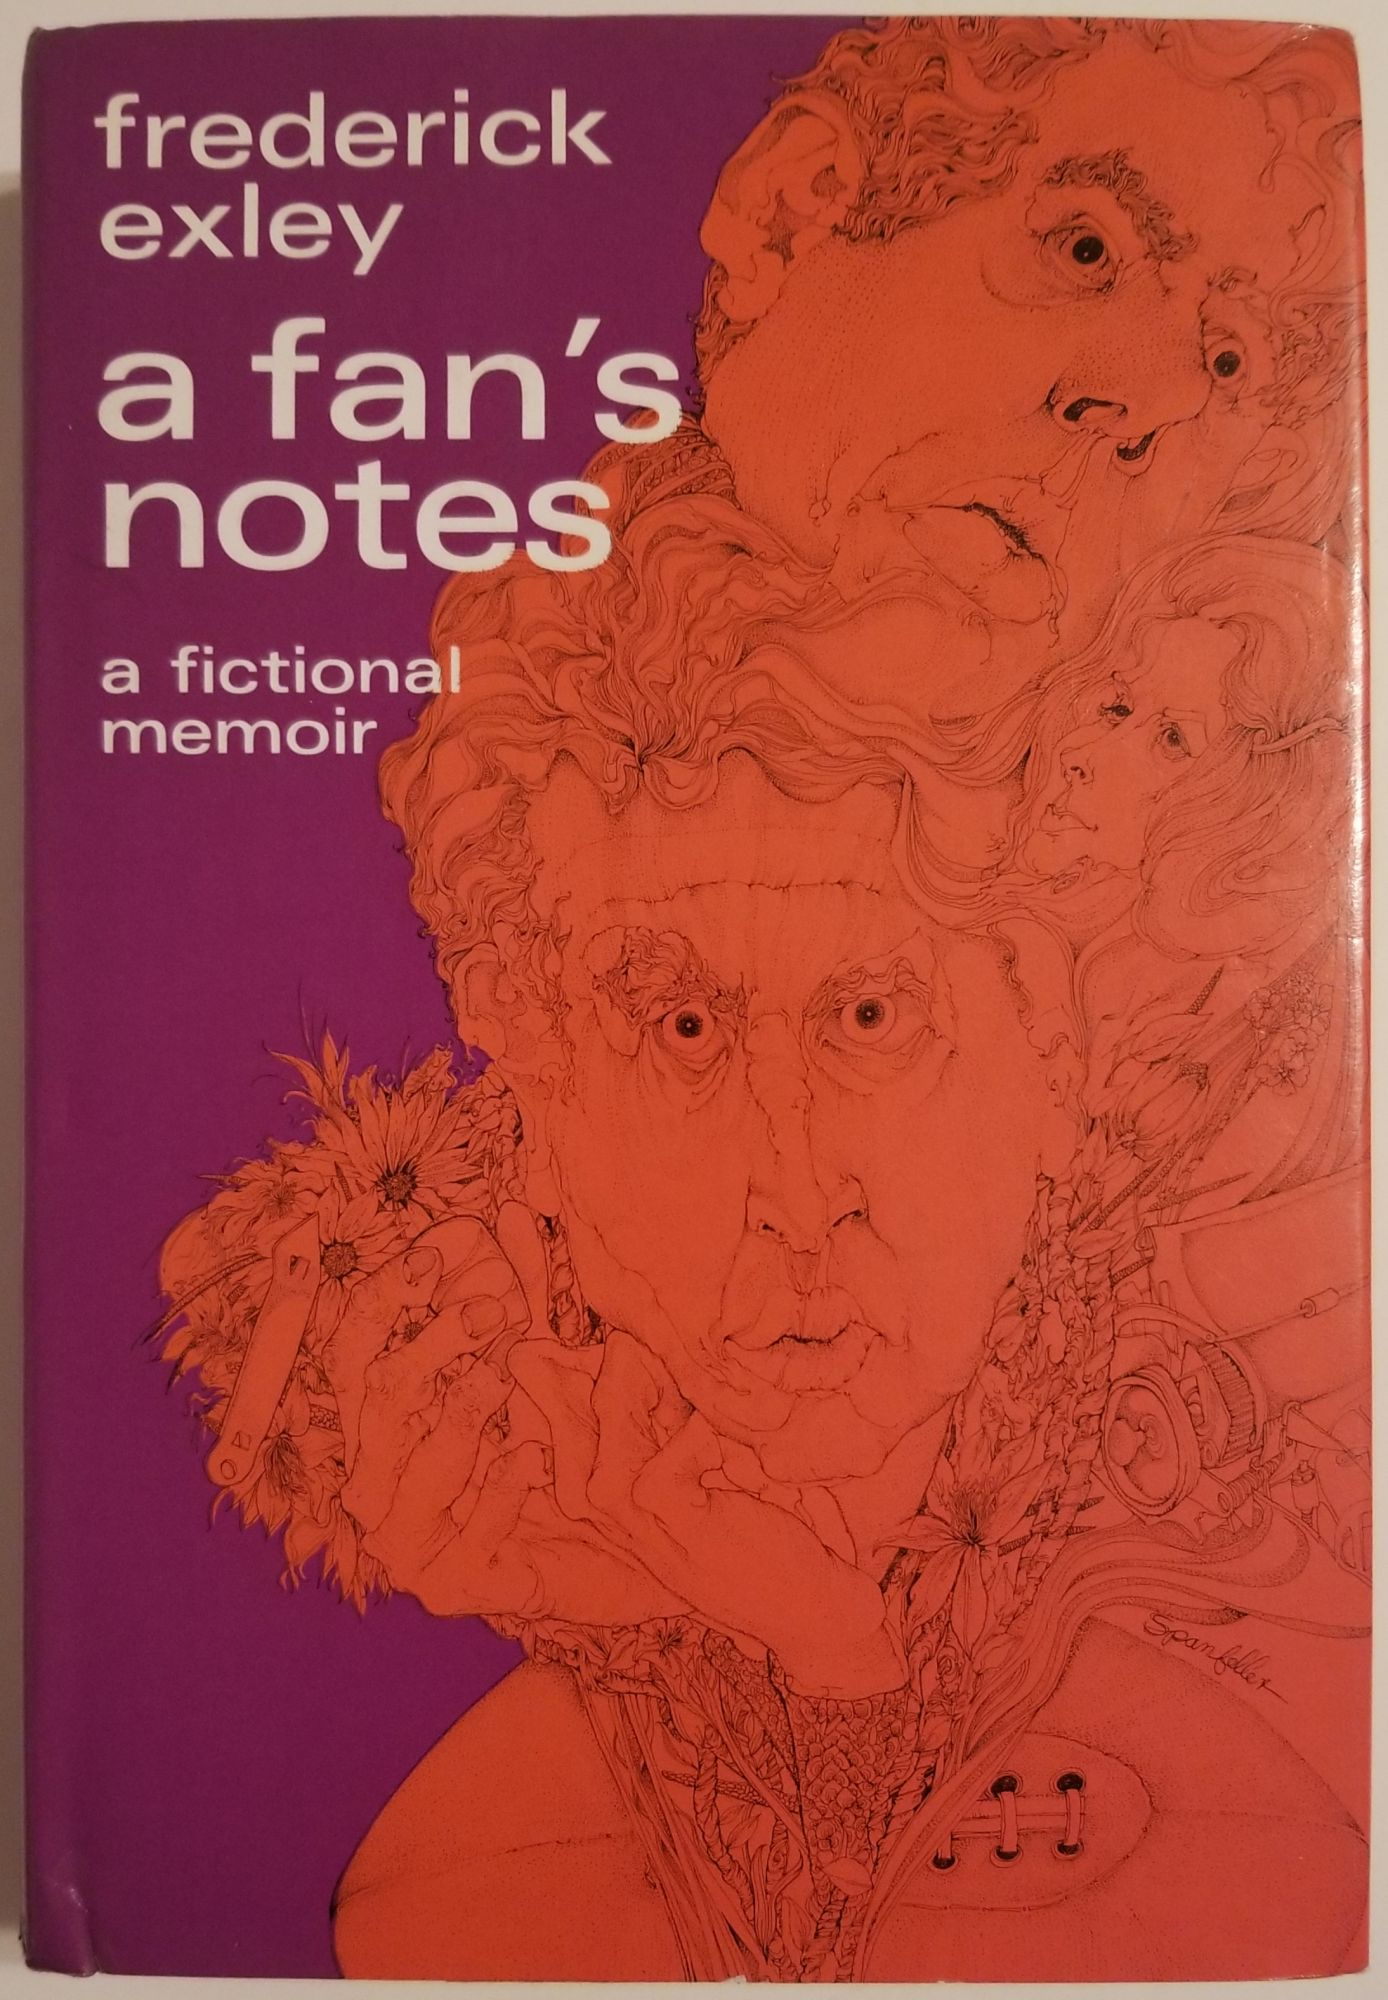 A FAN'S NOTES. A Fictional Memoir. Frederick Exley.